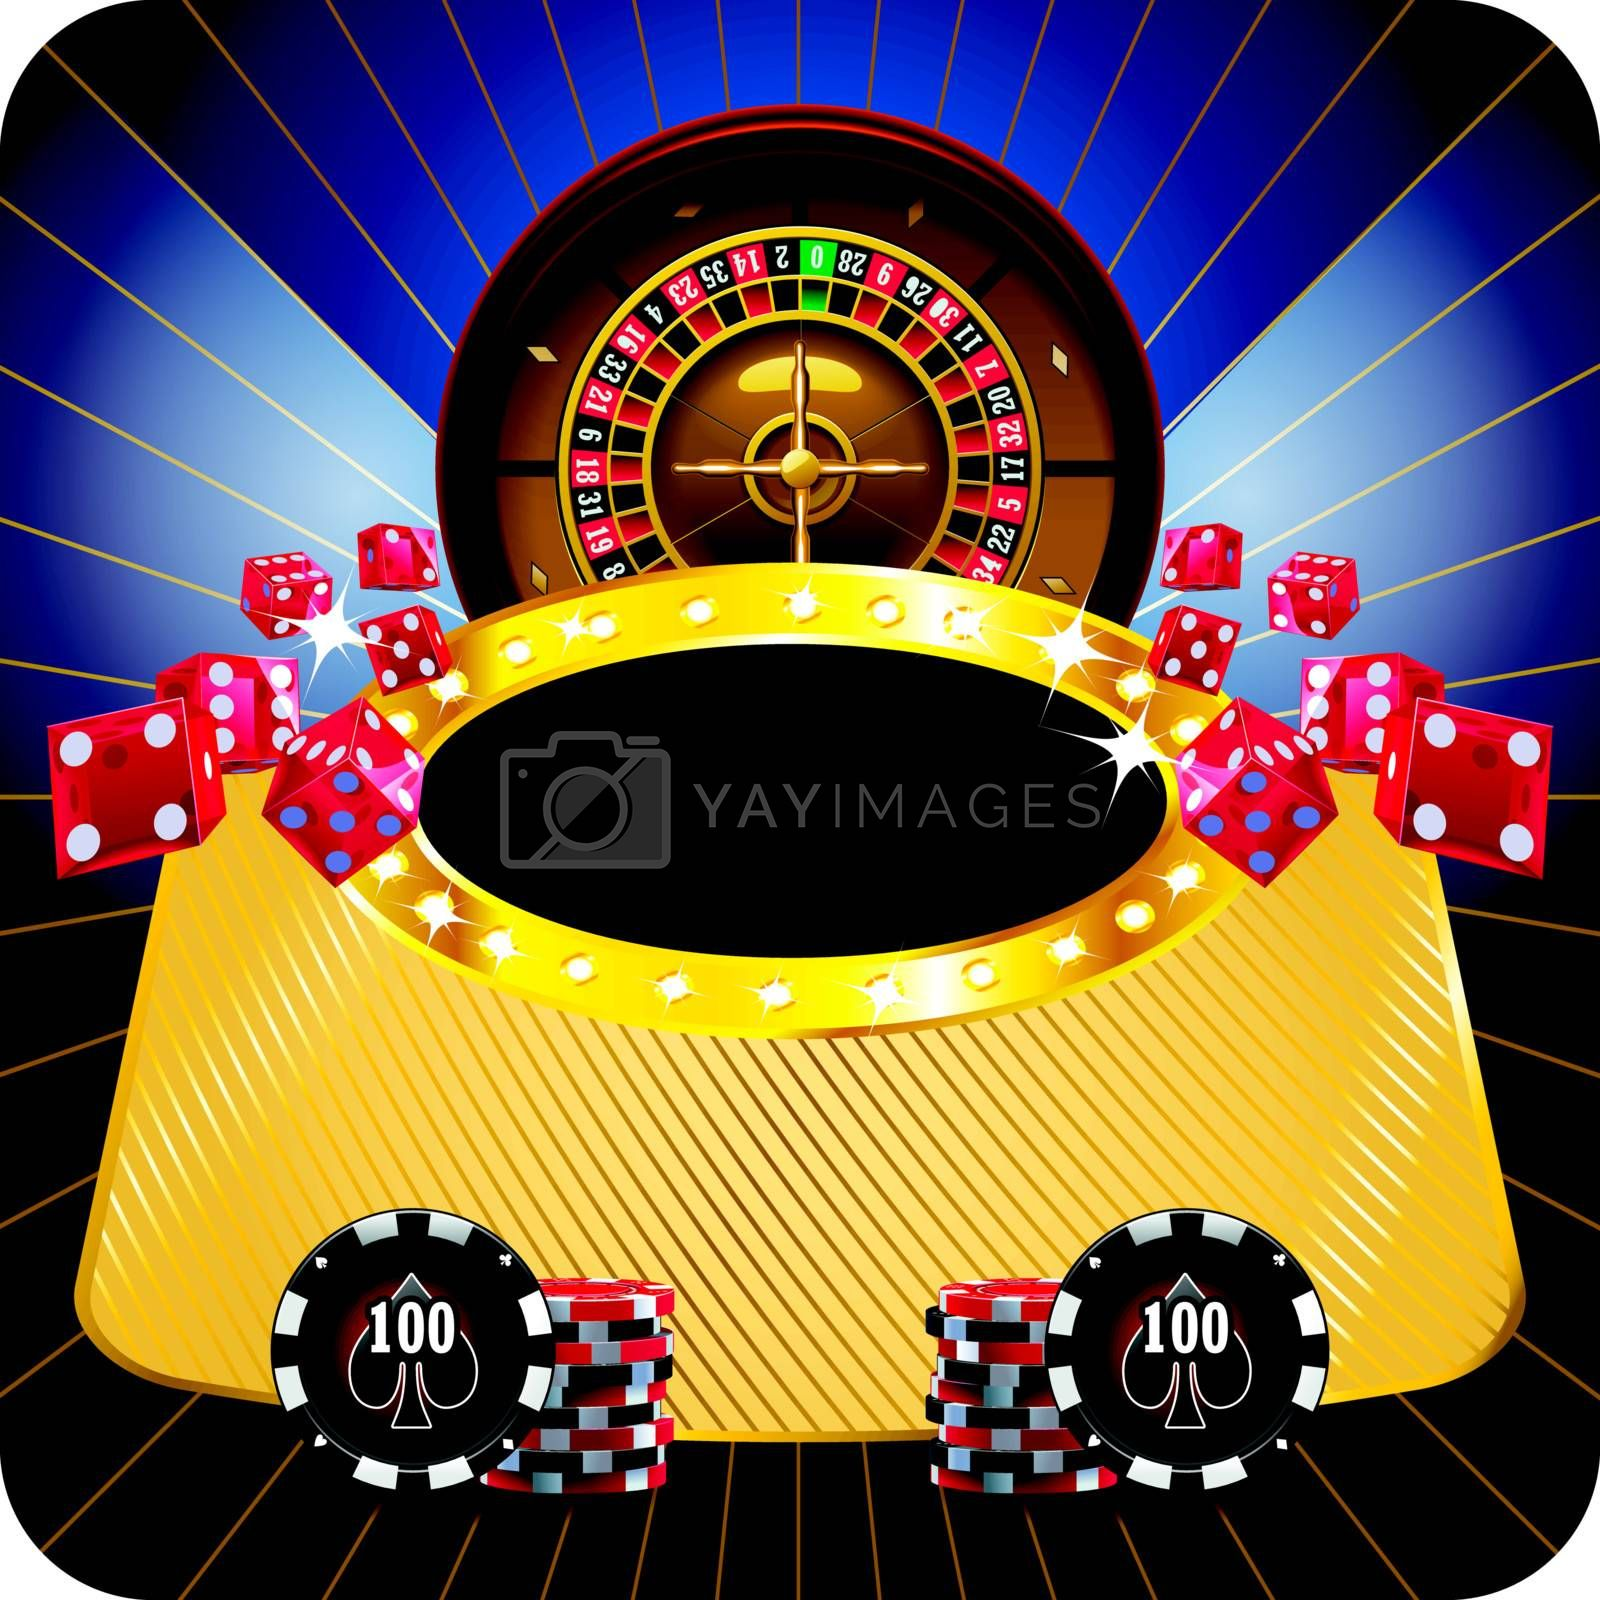 Casino dark framed composition with roulette wheel